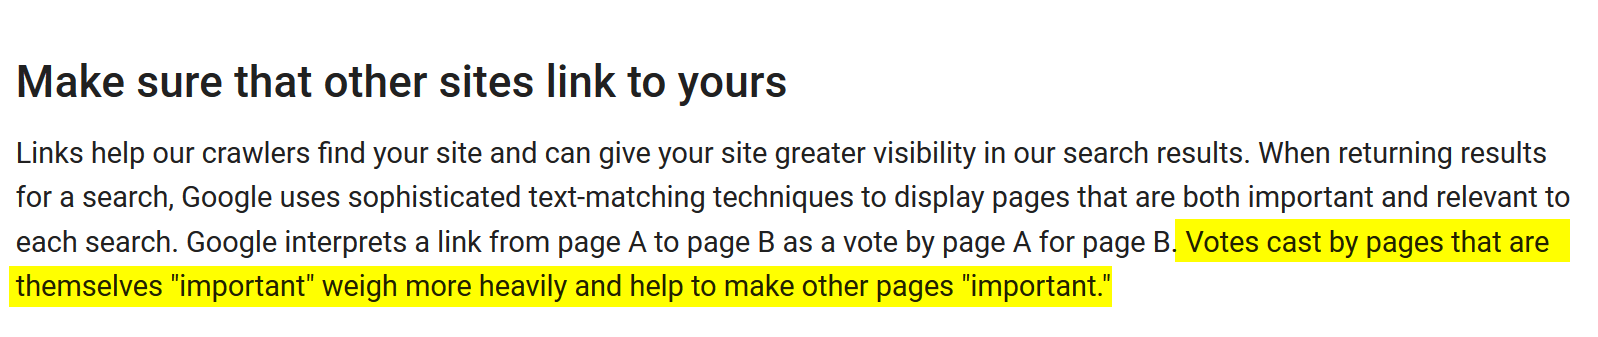 Authority of Linking Page